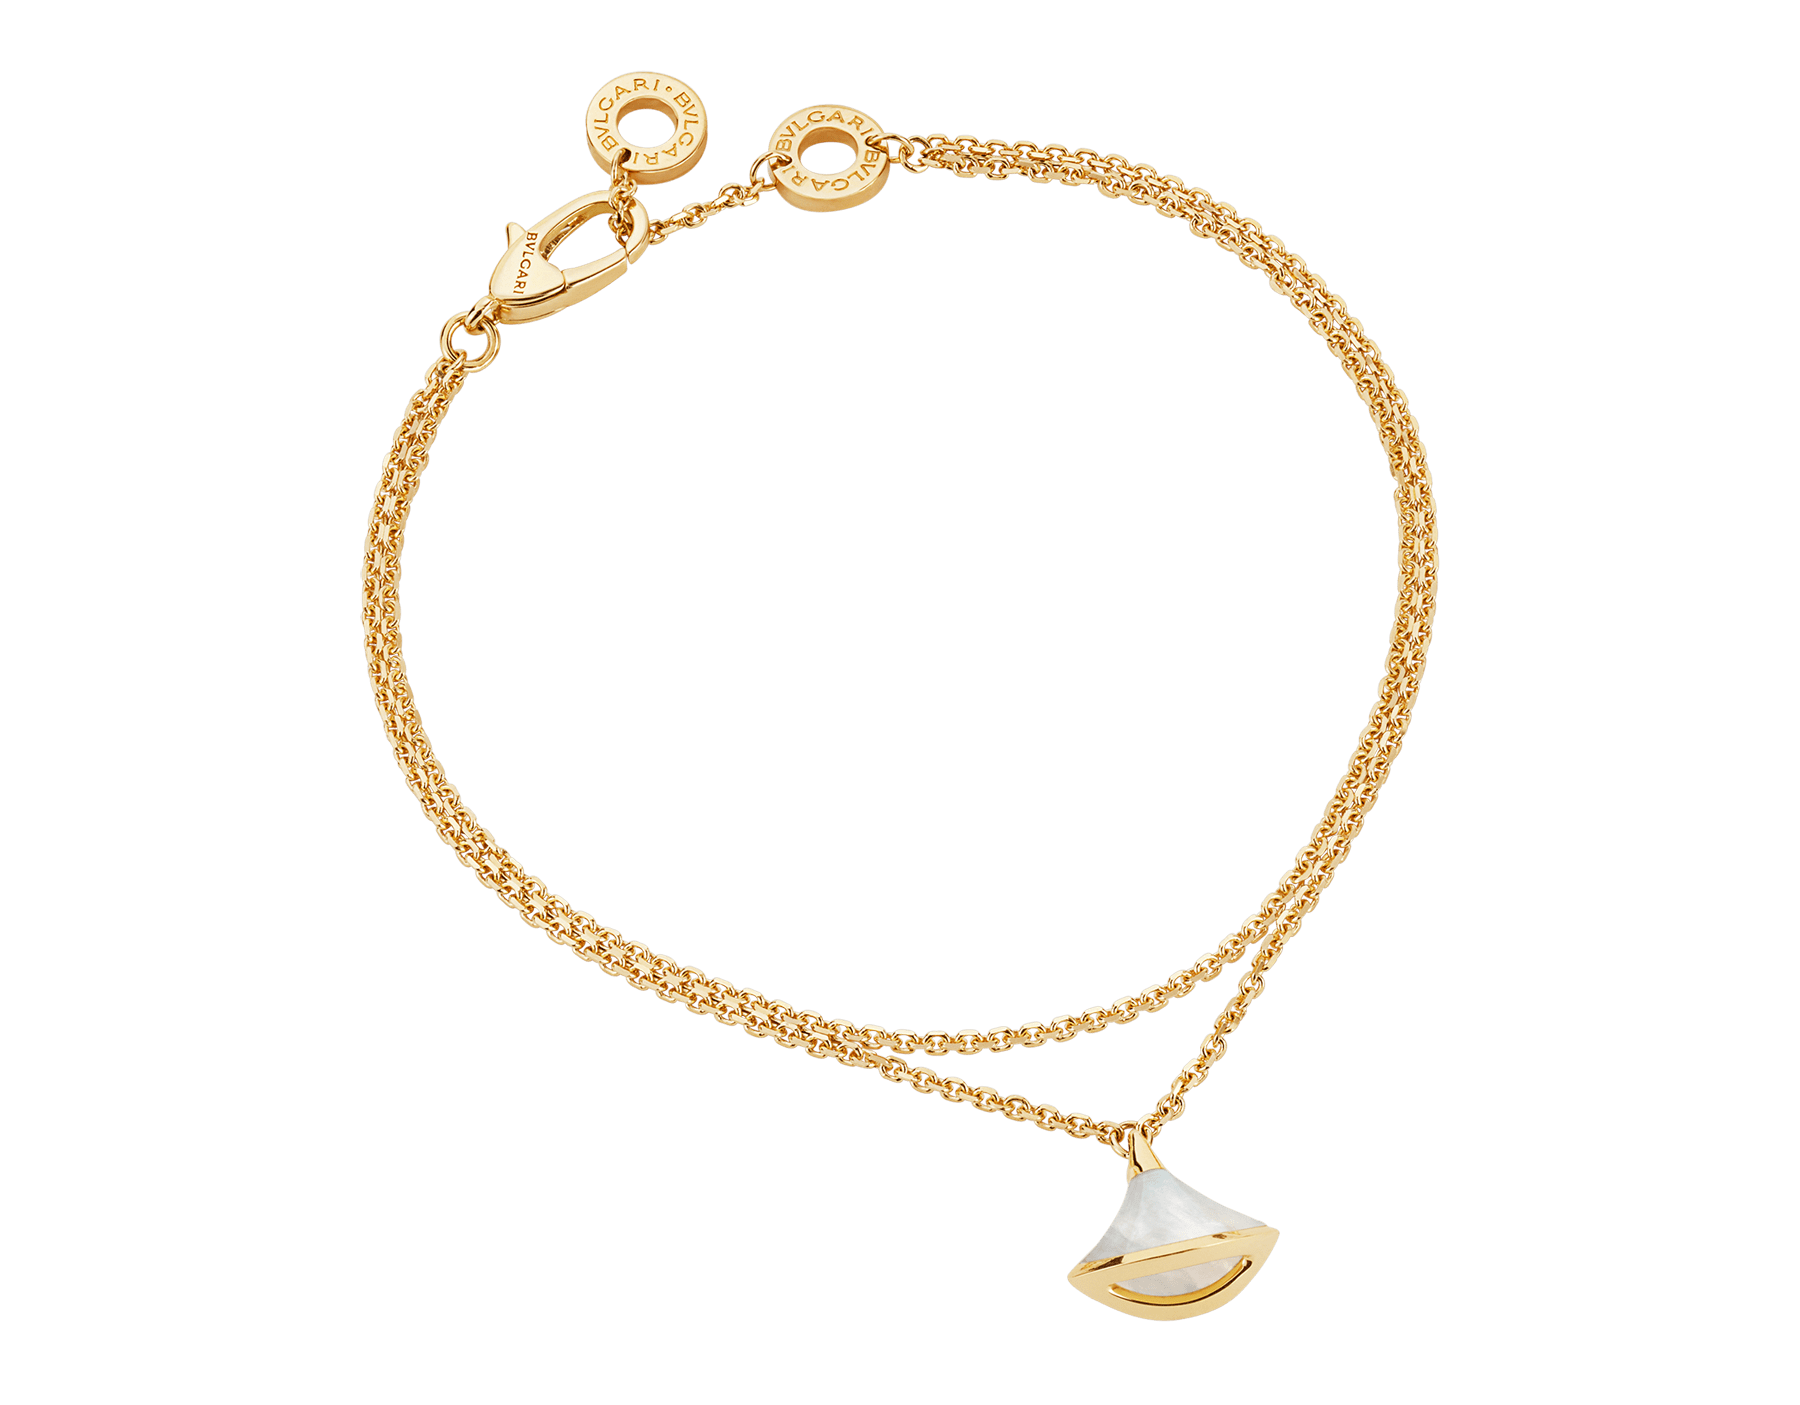 DIVAS' DREAM 18 kt yellow gold bracelet with pendant set with a mother-of-pearl element BR858988 image 2